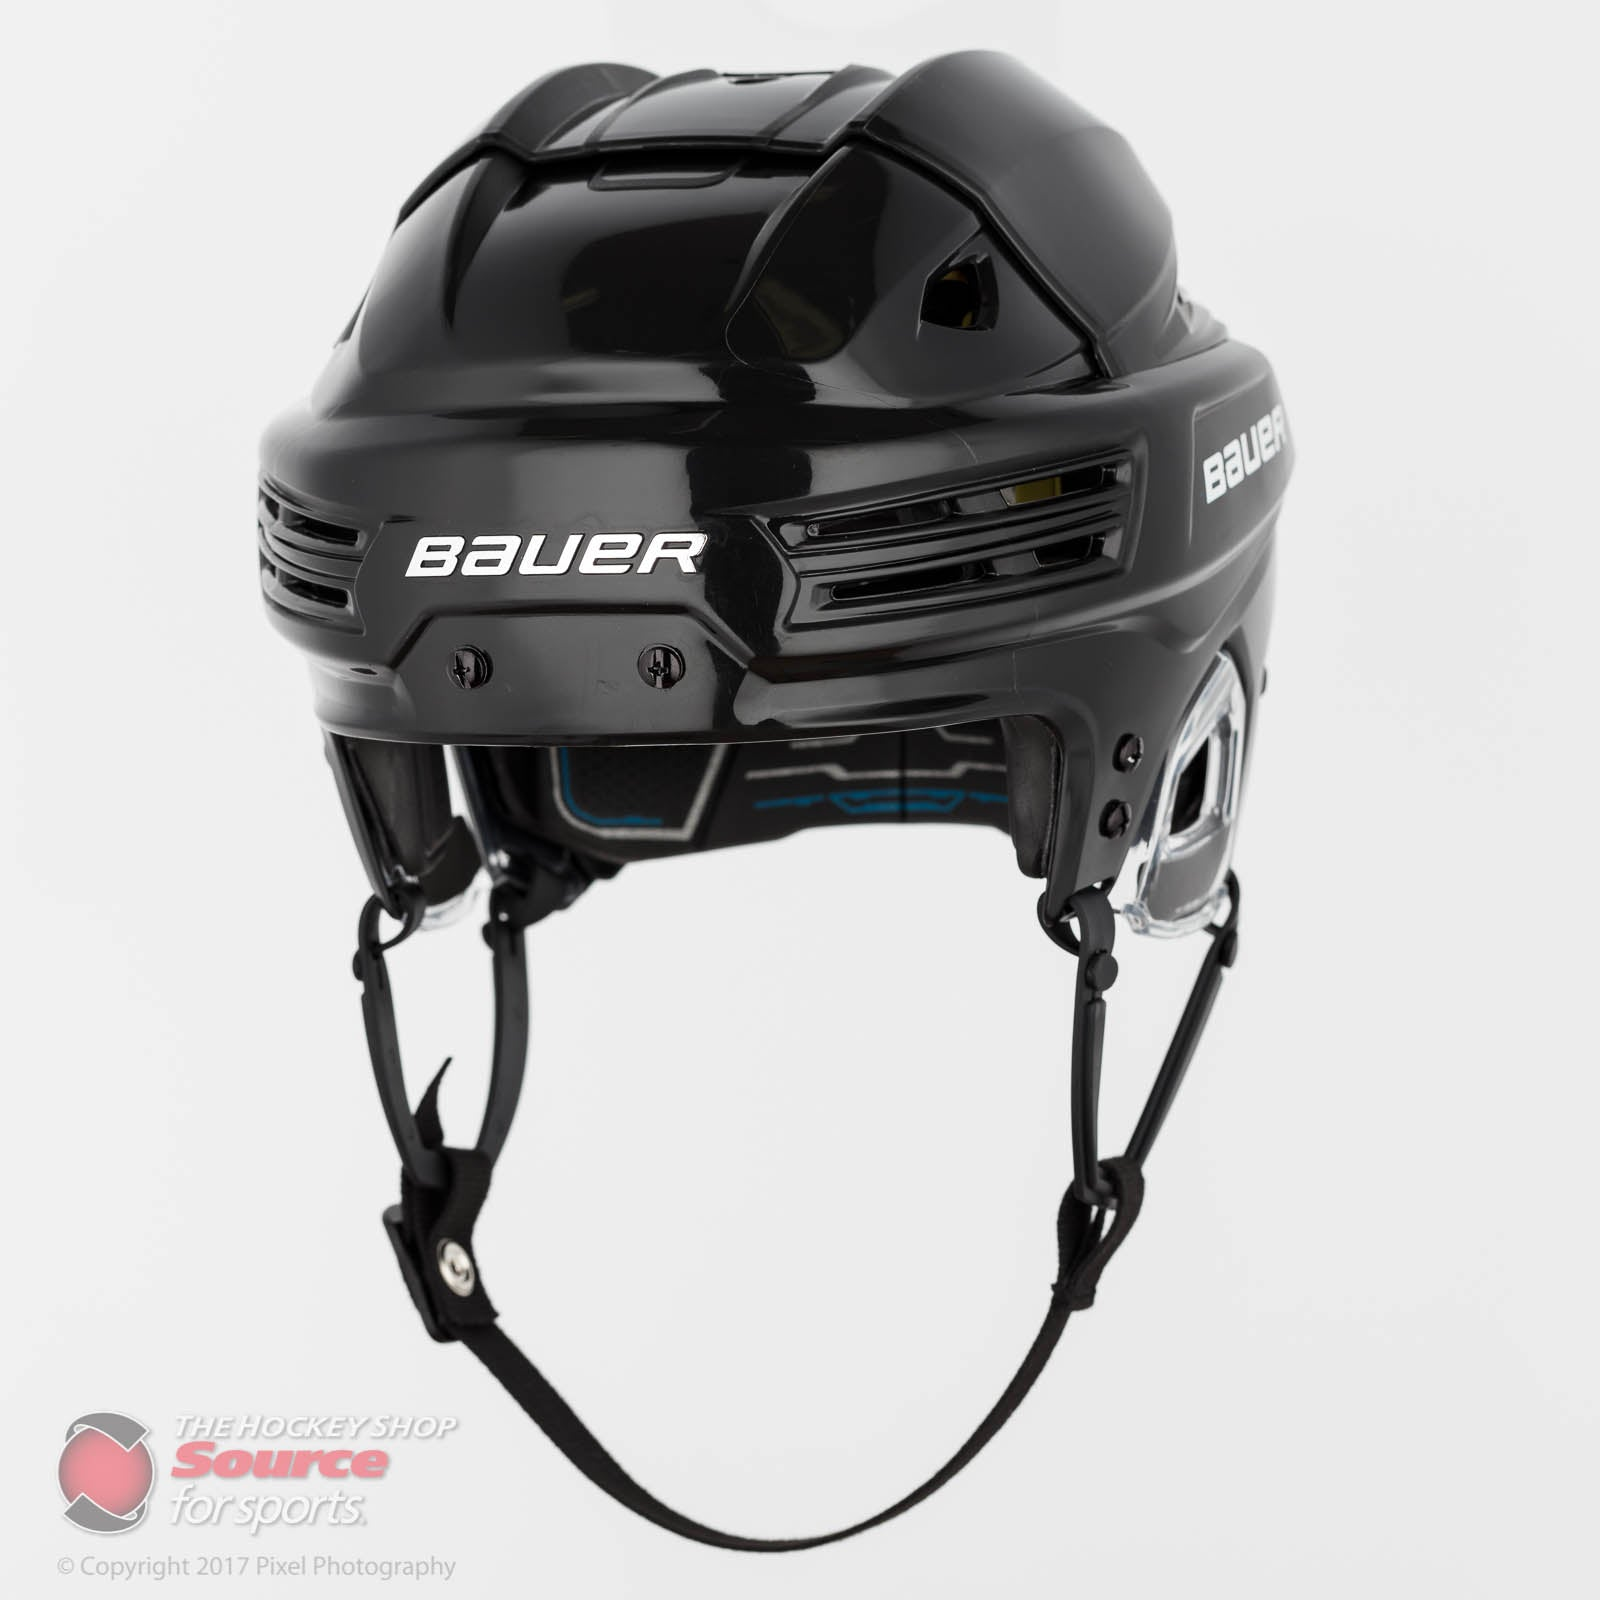 85ba704e717 Bauer Re-Akt 200 Helmet Review – The Hockey Shop Source For Sports